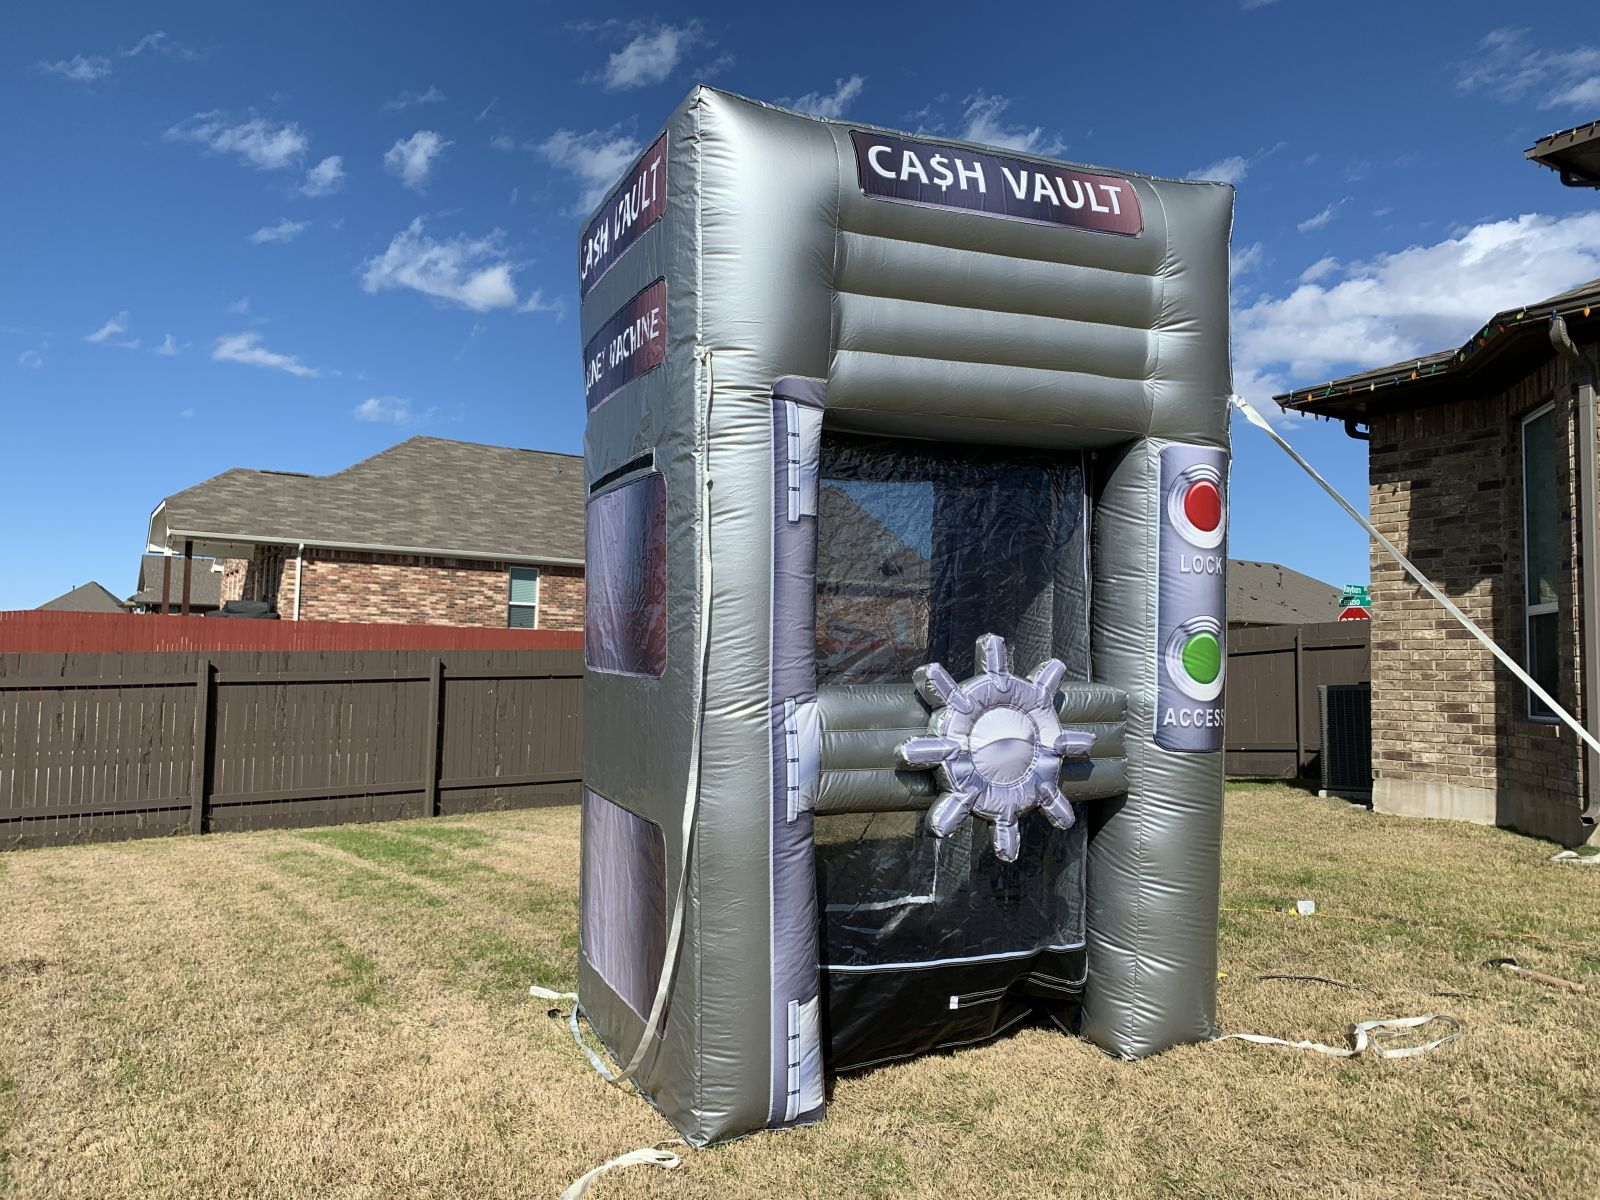 Cash Cube Rental in Austin Texas from Austin Bounce House Rentals